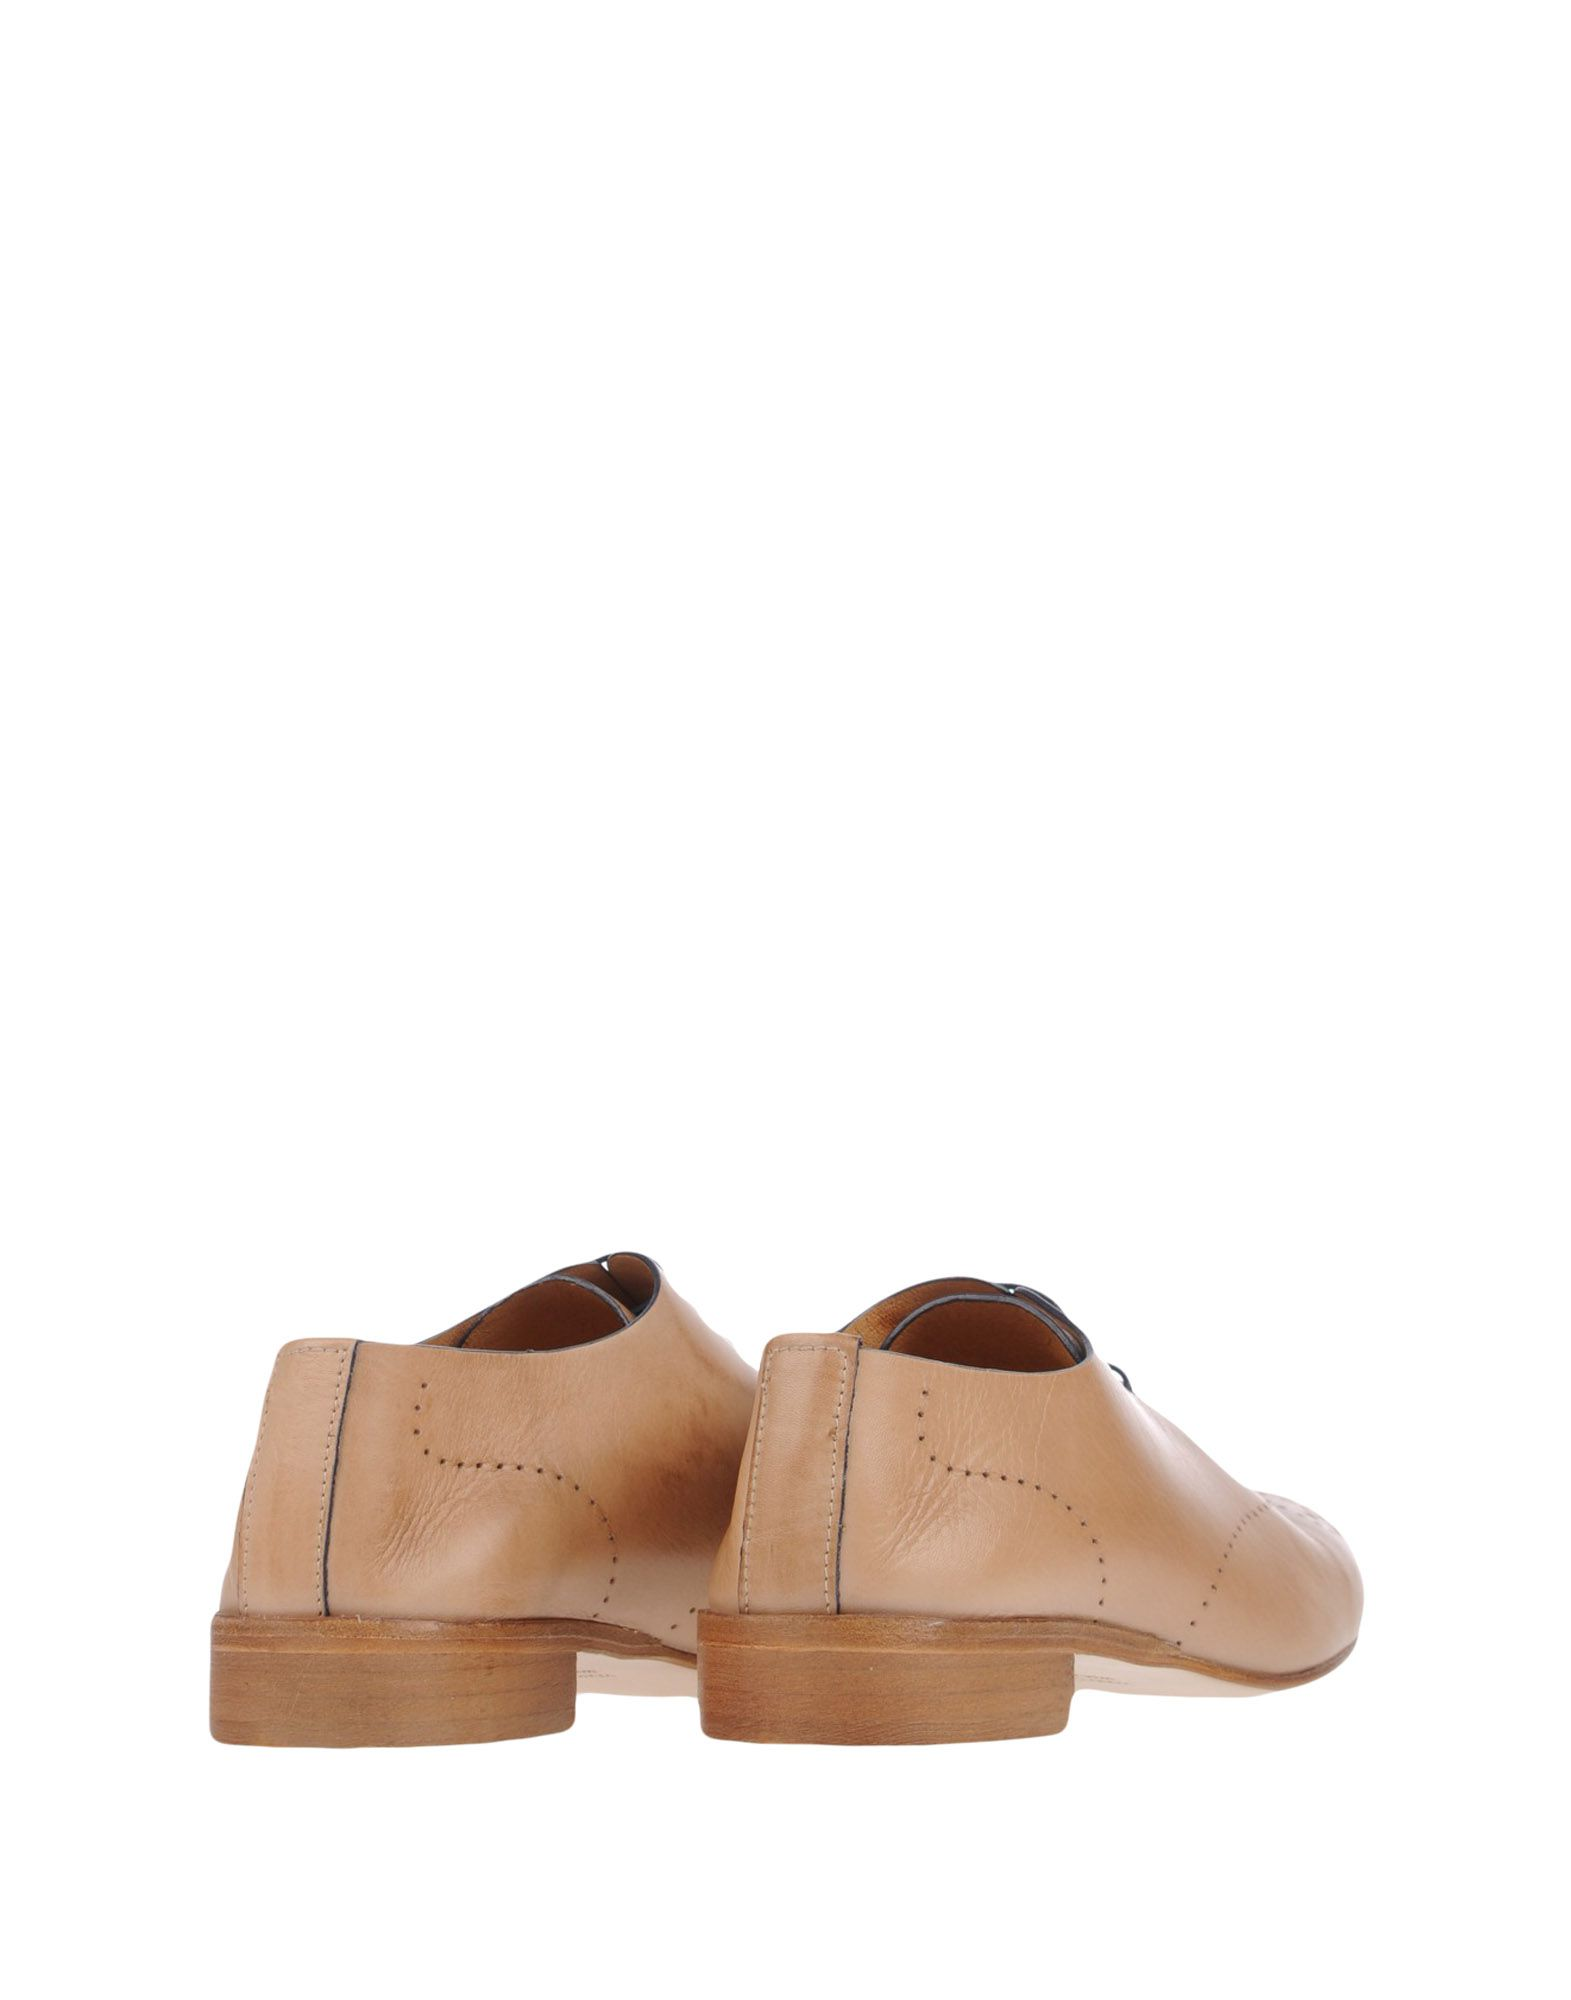 Chaussures - Tribunaux Starlette caiKL